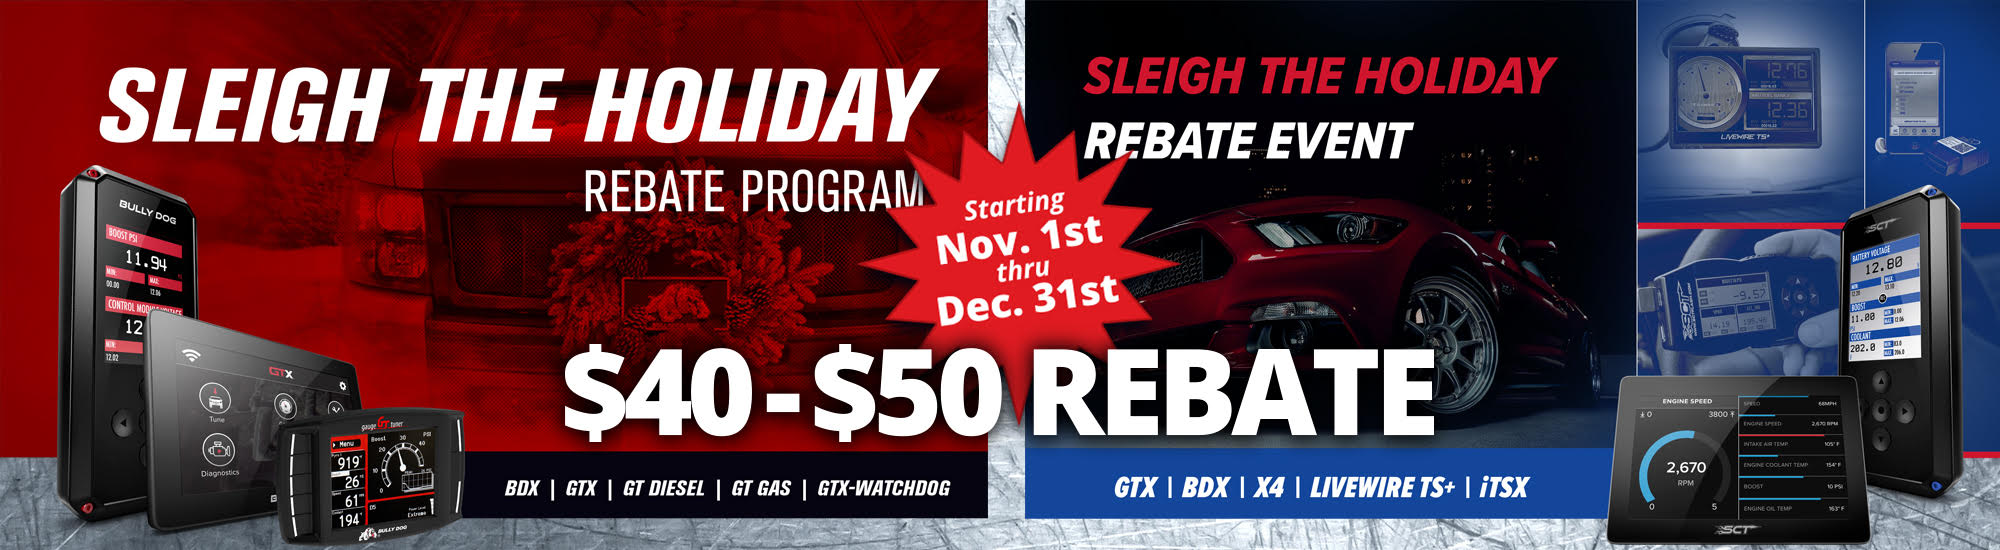 SCT Holiday Rebate Slider